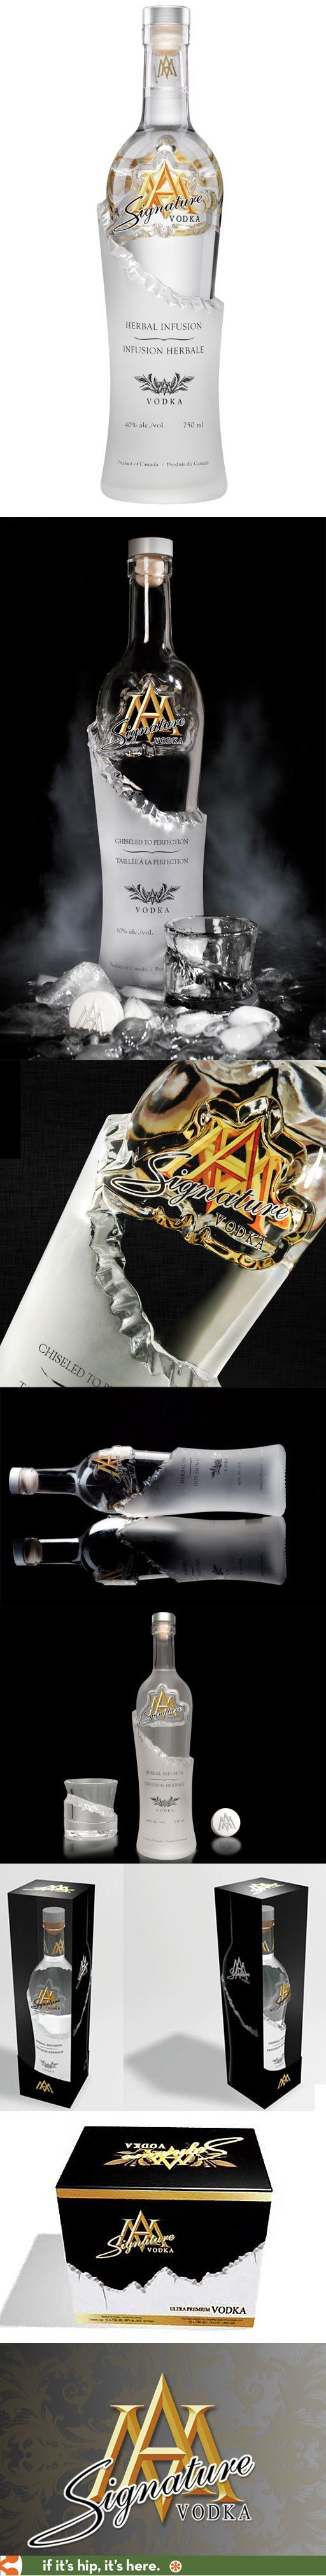 Signature Vodka (herbal-infused) in an unusual chiseled bottle design #packaging #design